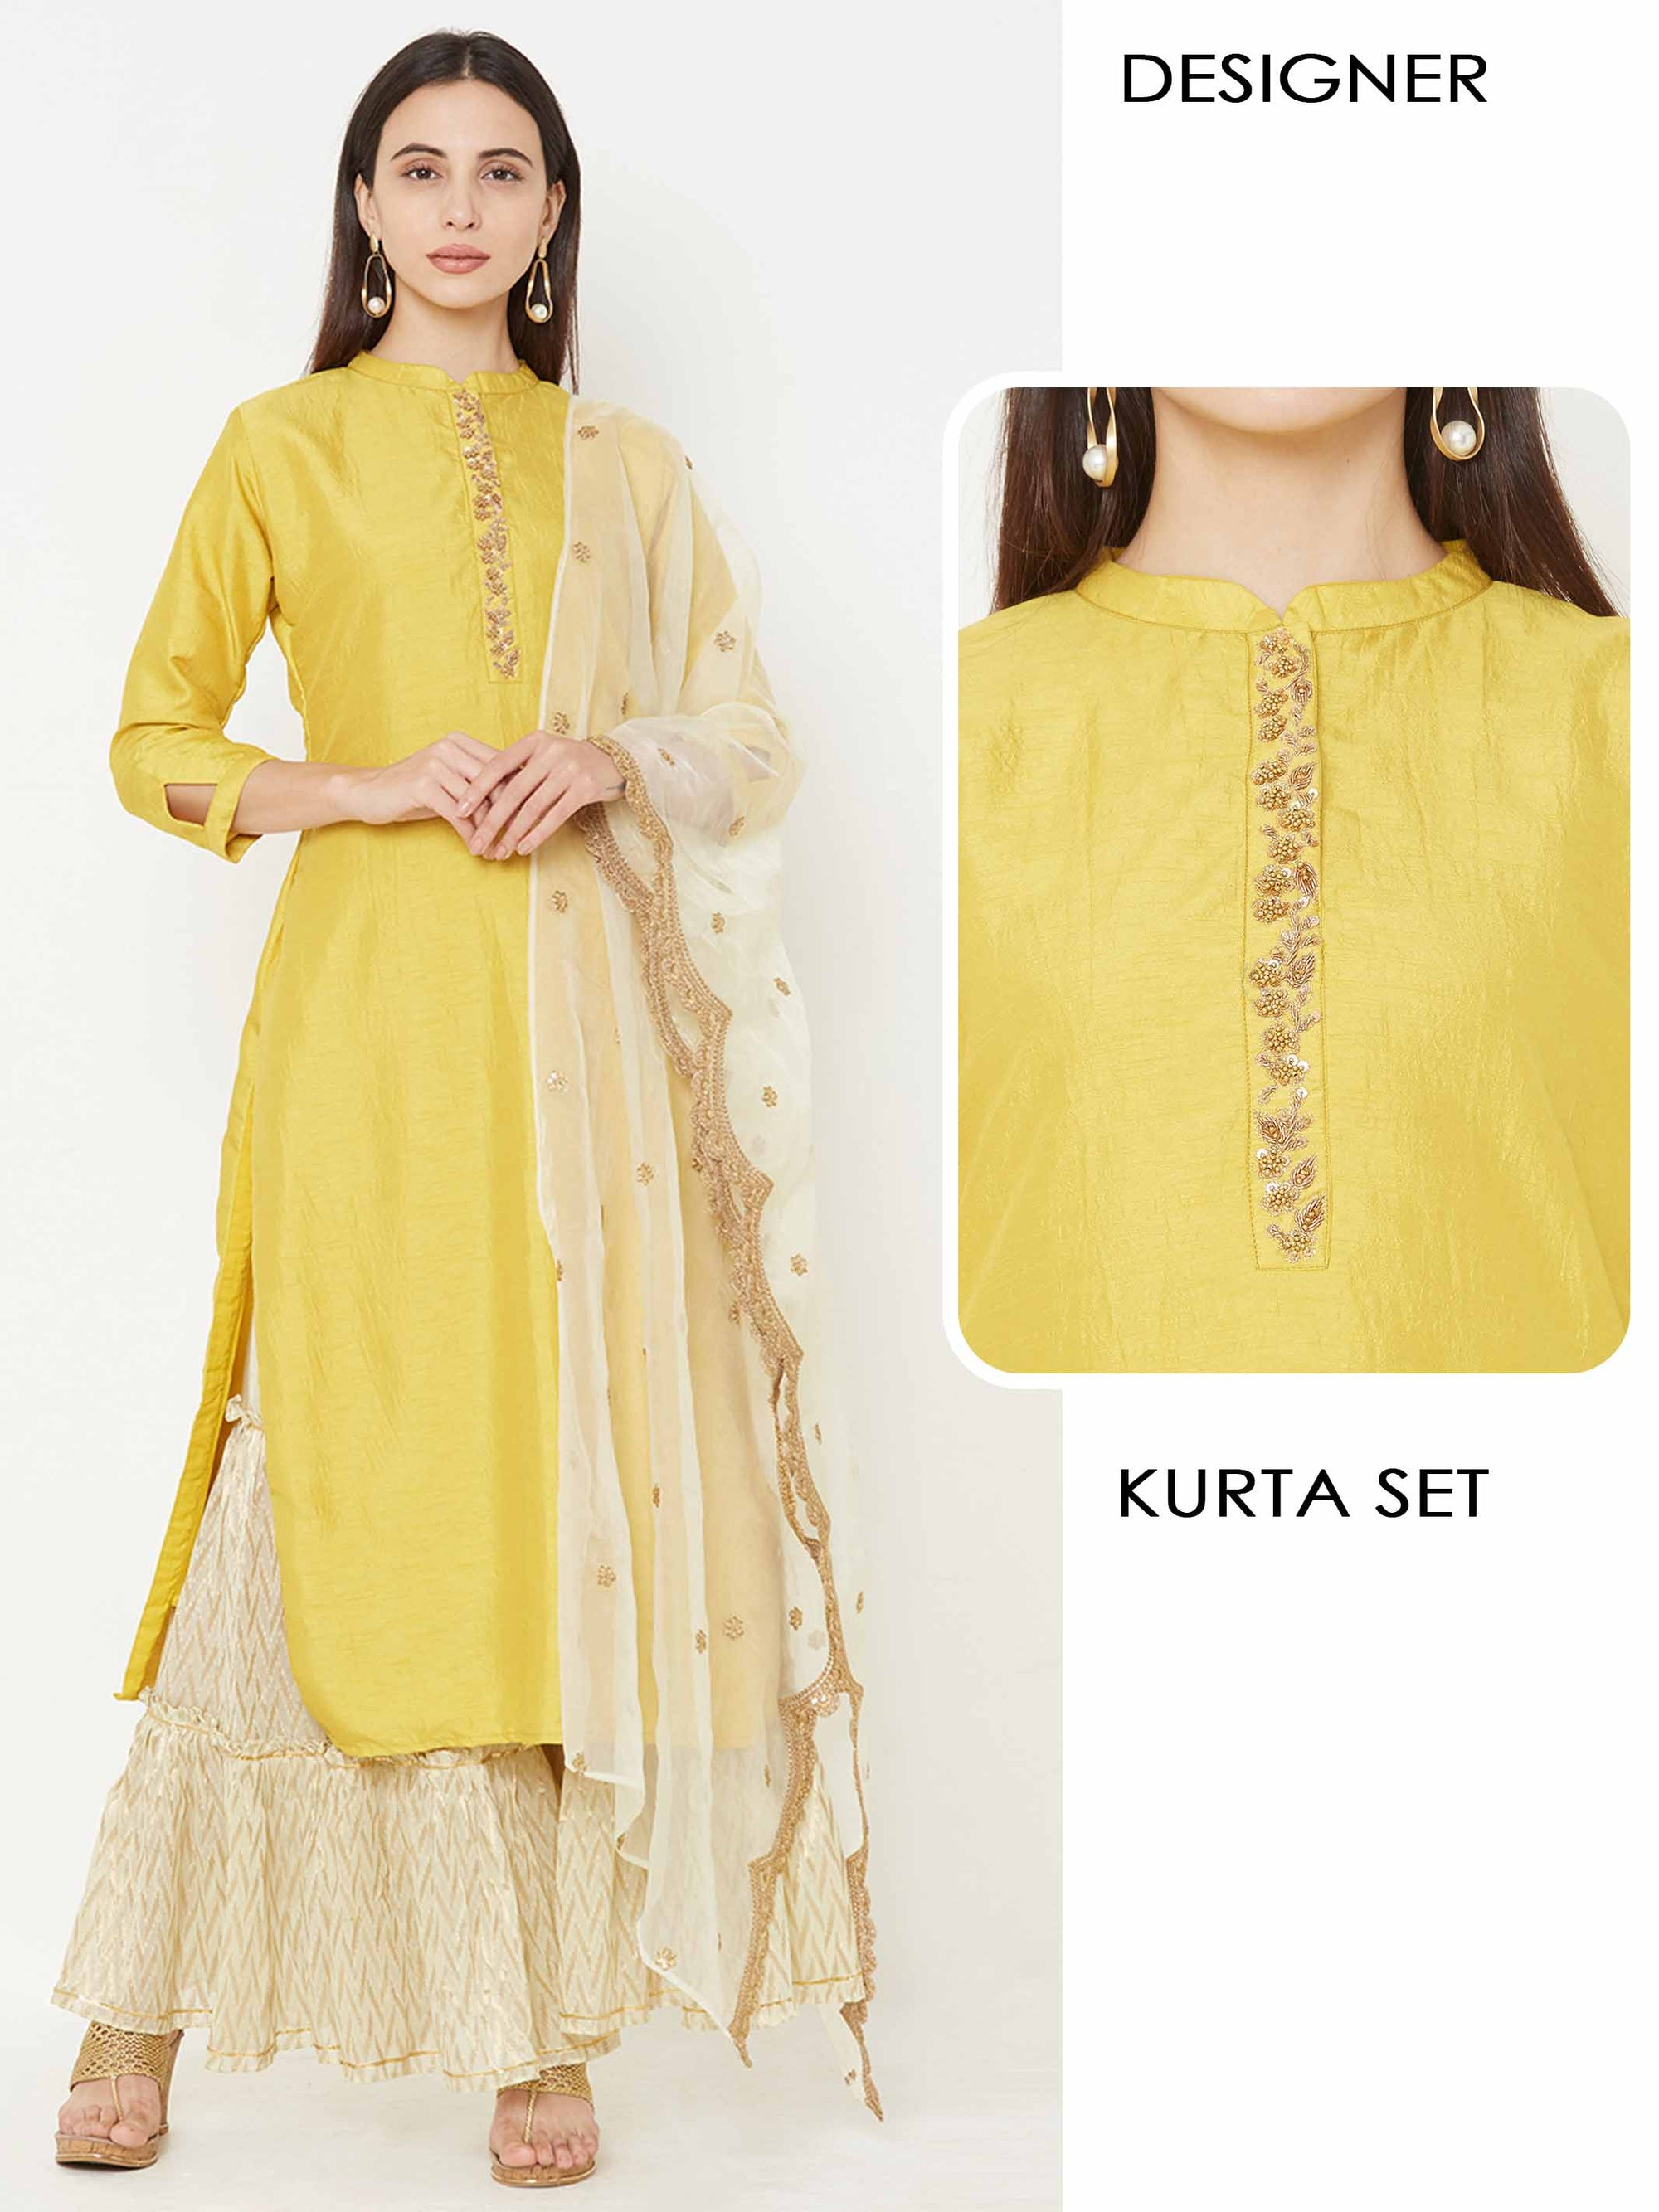 Embroidered Placket Kurta with woven design Sharara with Embroidered Scale up Dupatta – Mustard